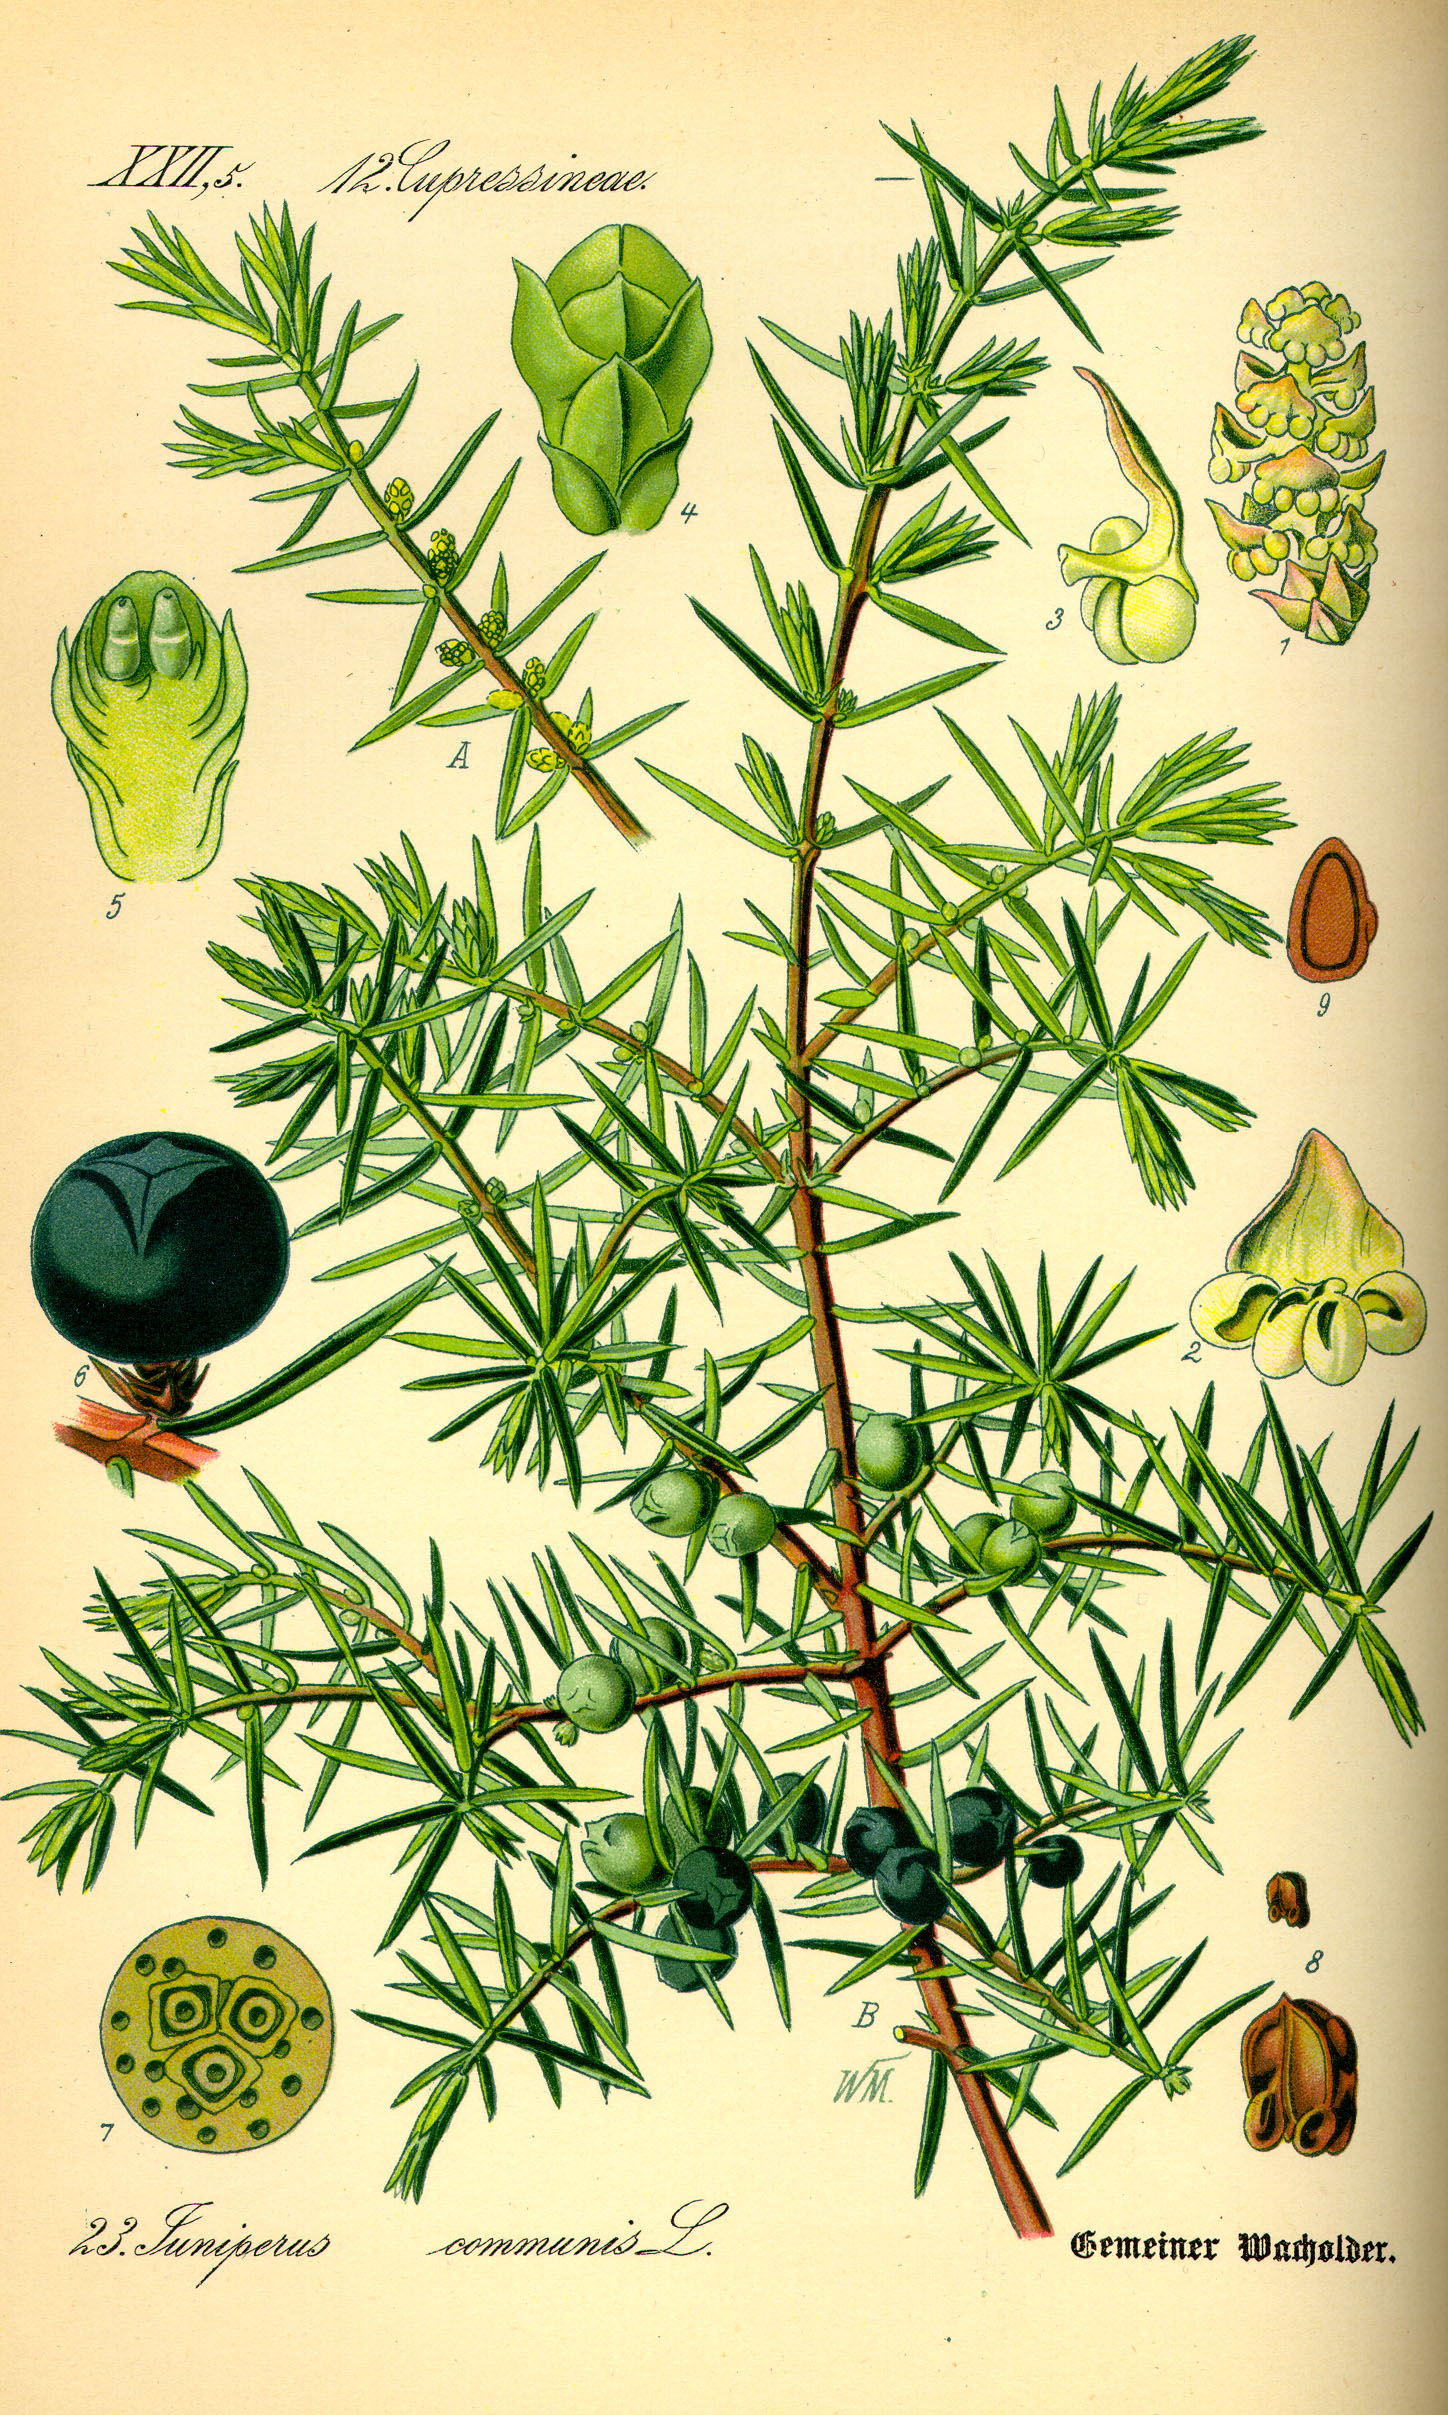 Juniperus_communis illustrazione_ fonte wikipedia commons